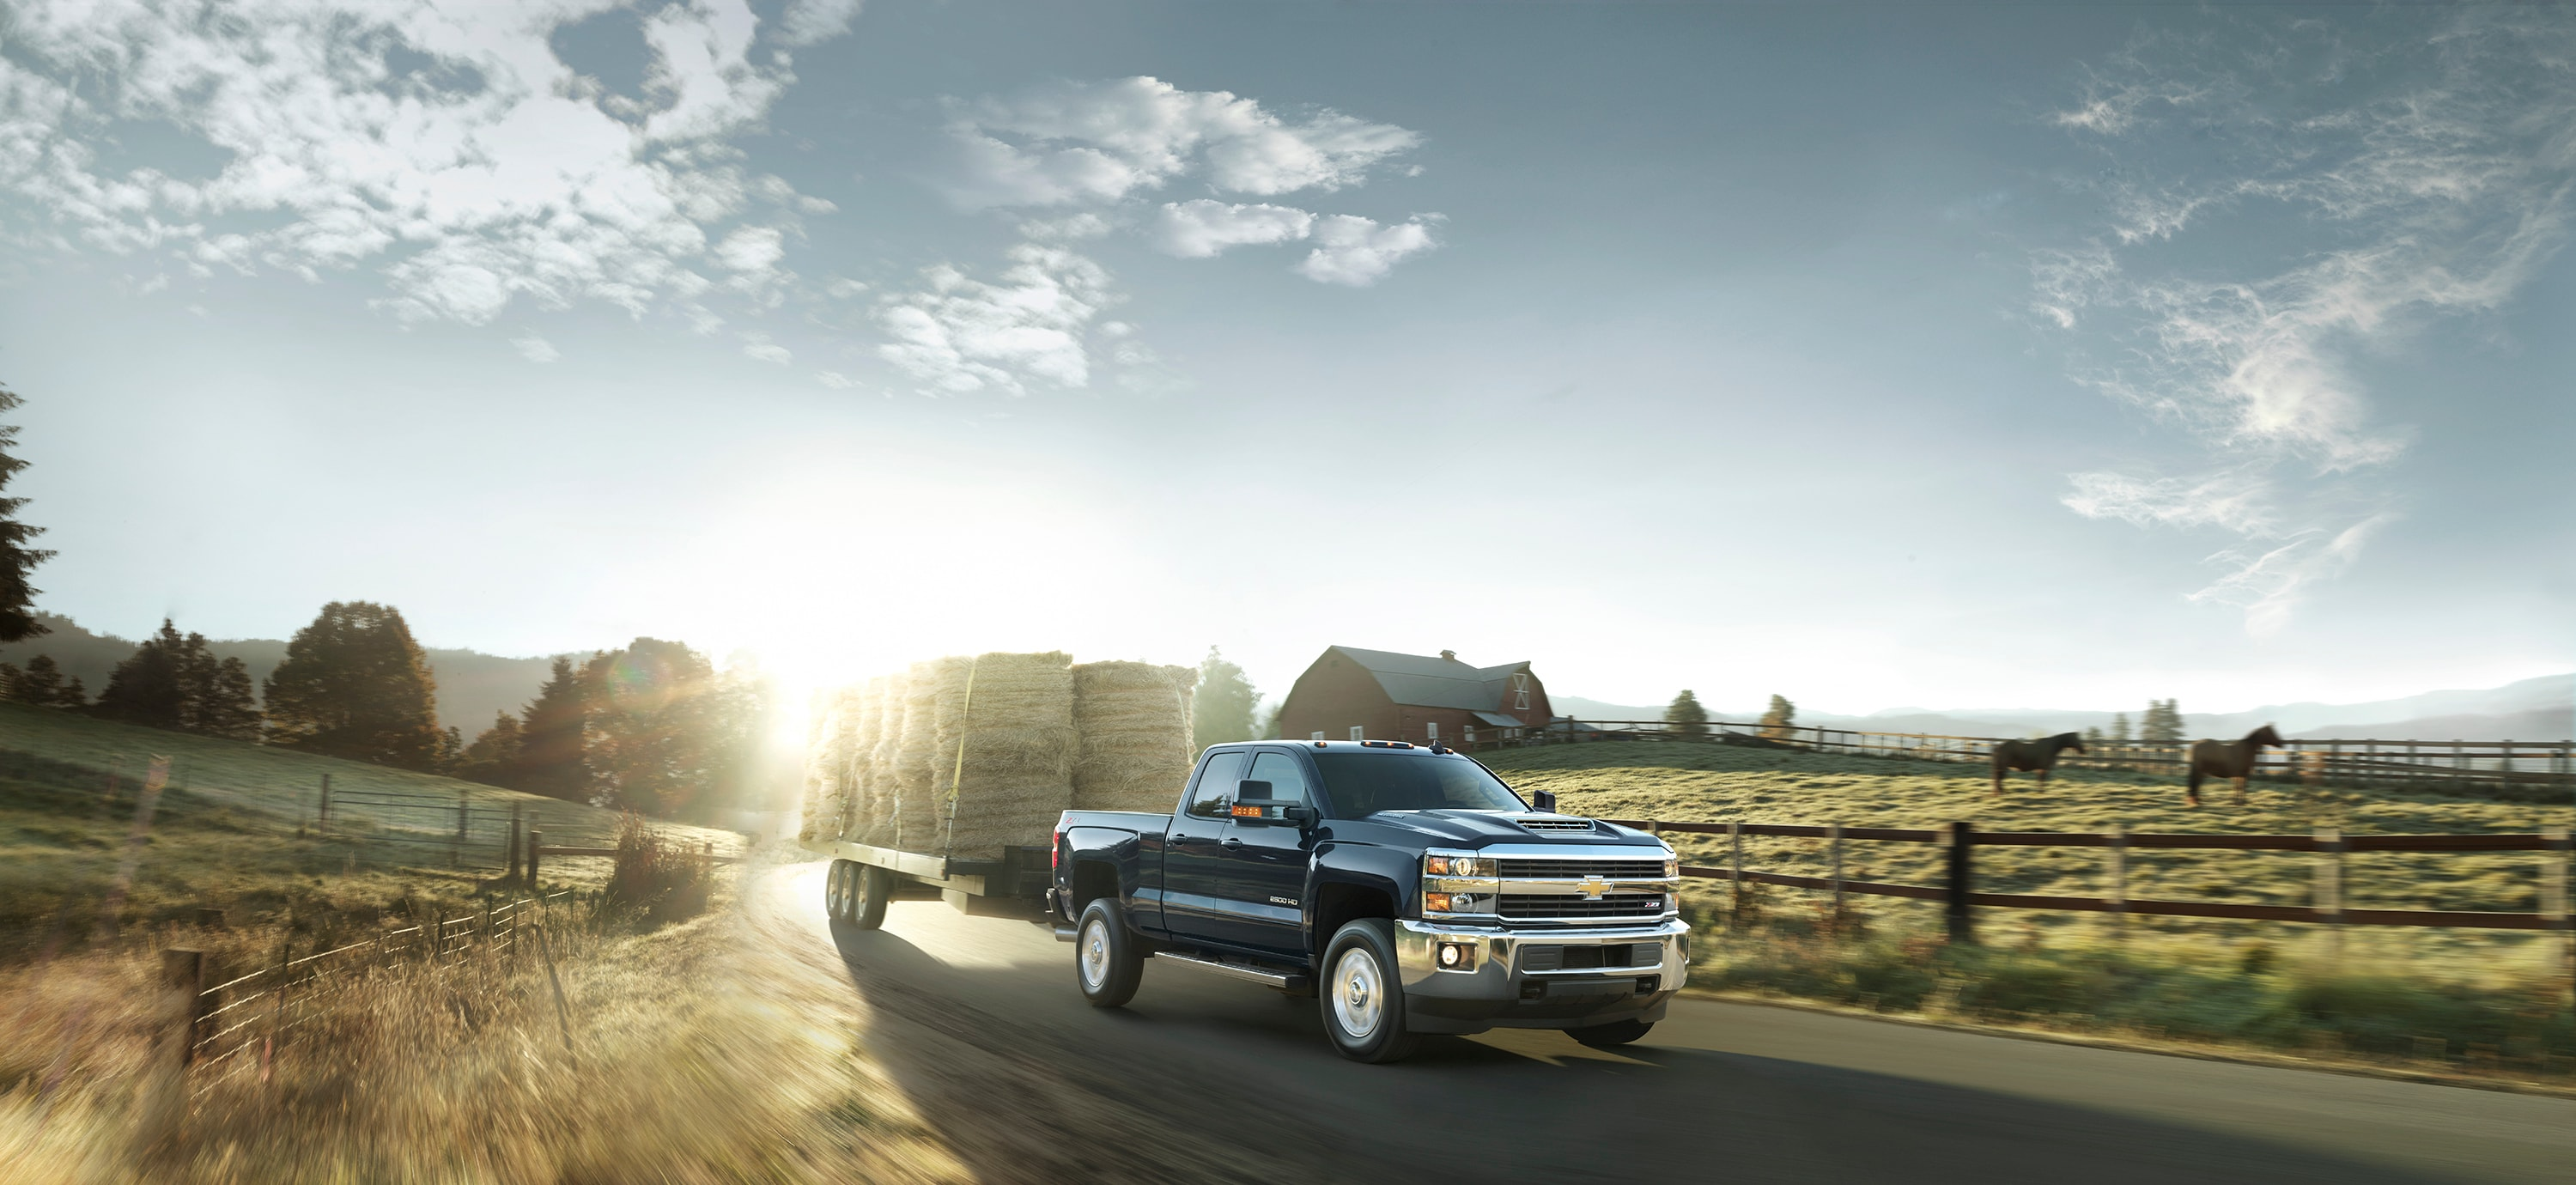 Explore Used Cars Trucks And Suvs For Sale At Truck Town Texas